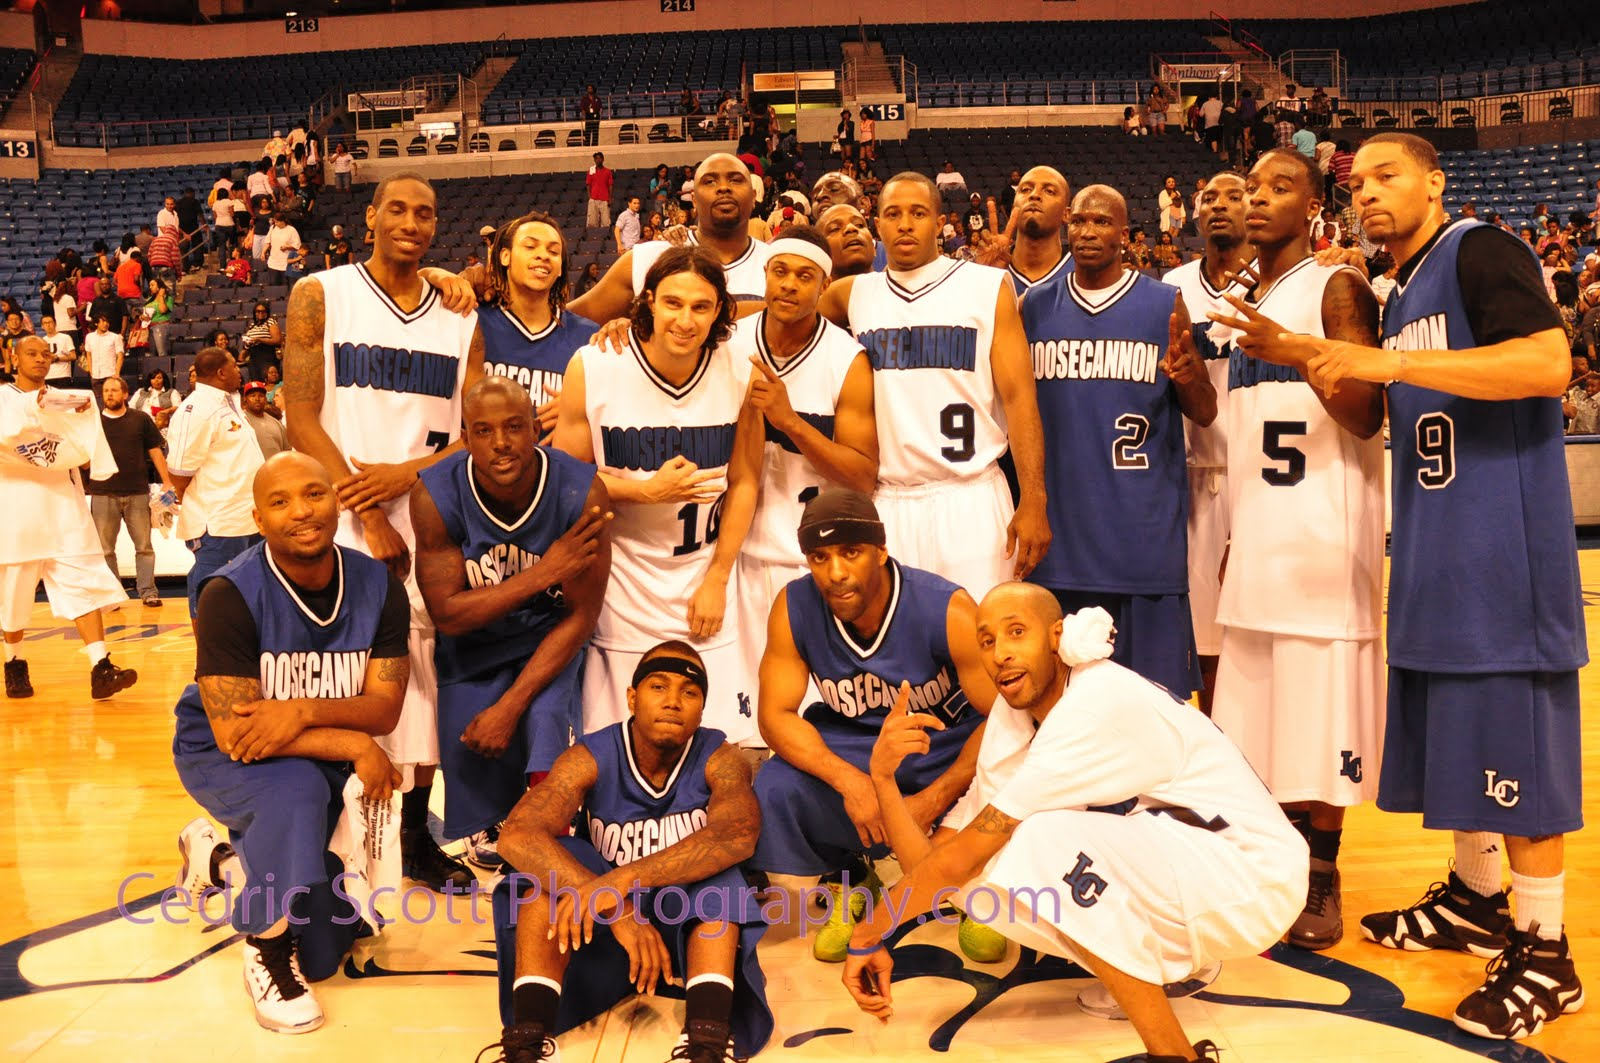 Loose cannon celebrity basketball